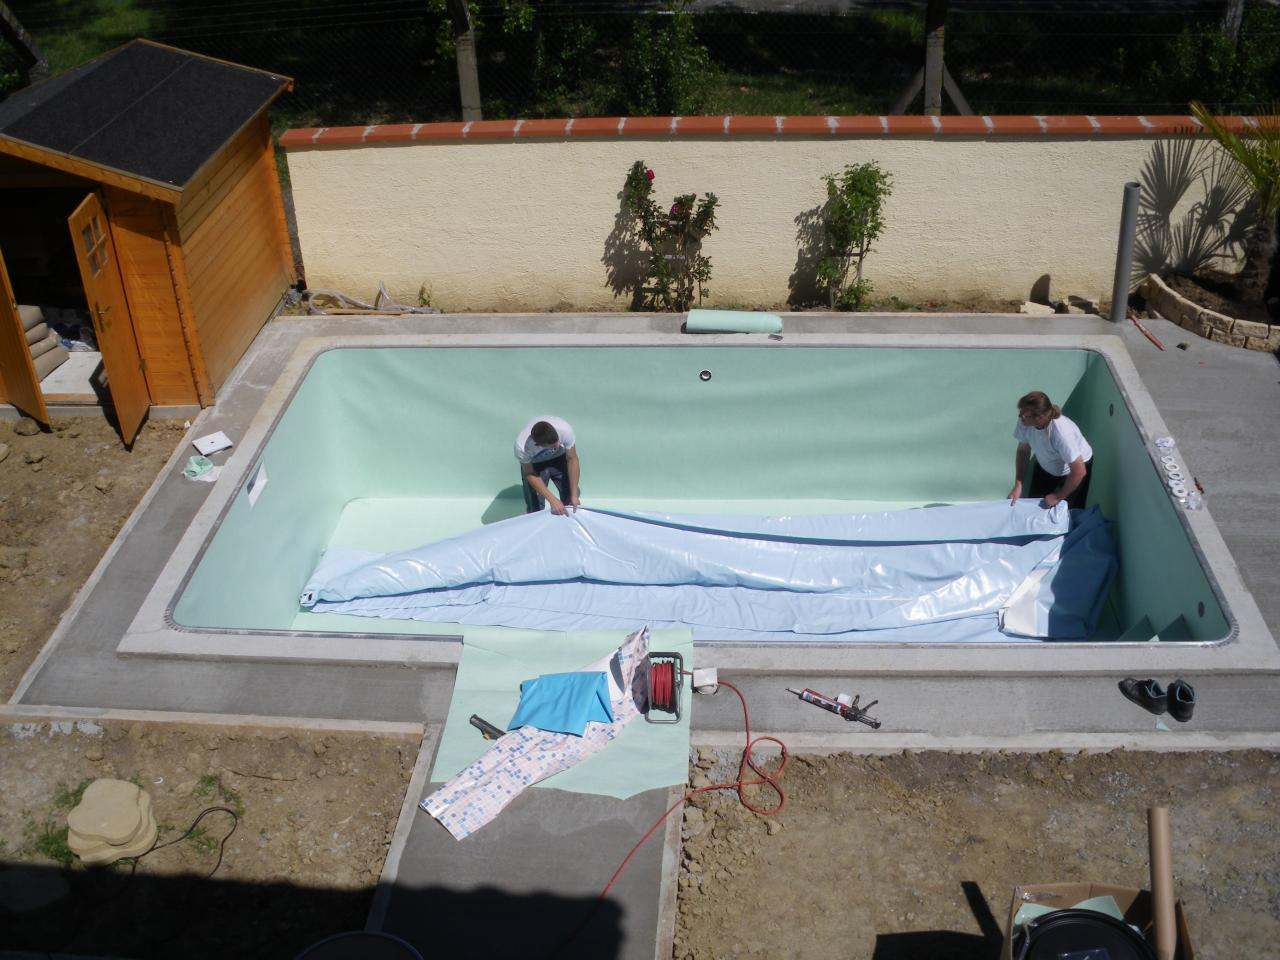 Piscine guide choix de solution co t et devis en ligne for Construire un local technique pour piscine en parpaing